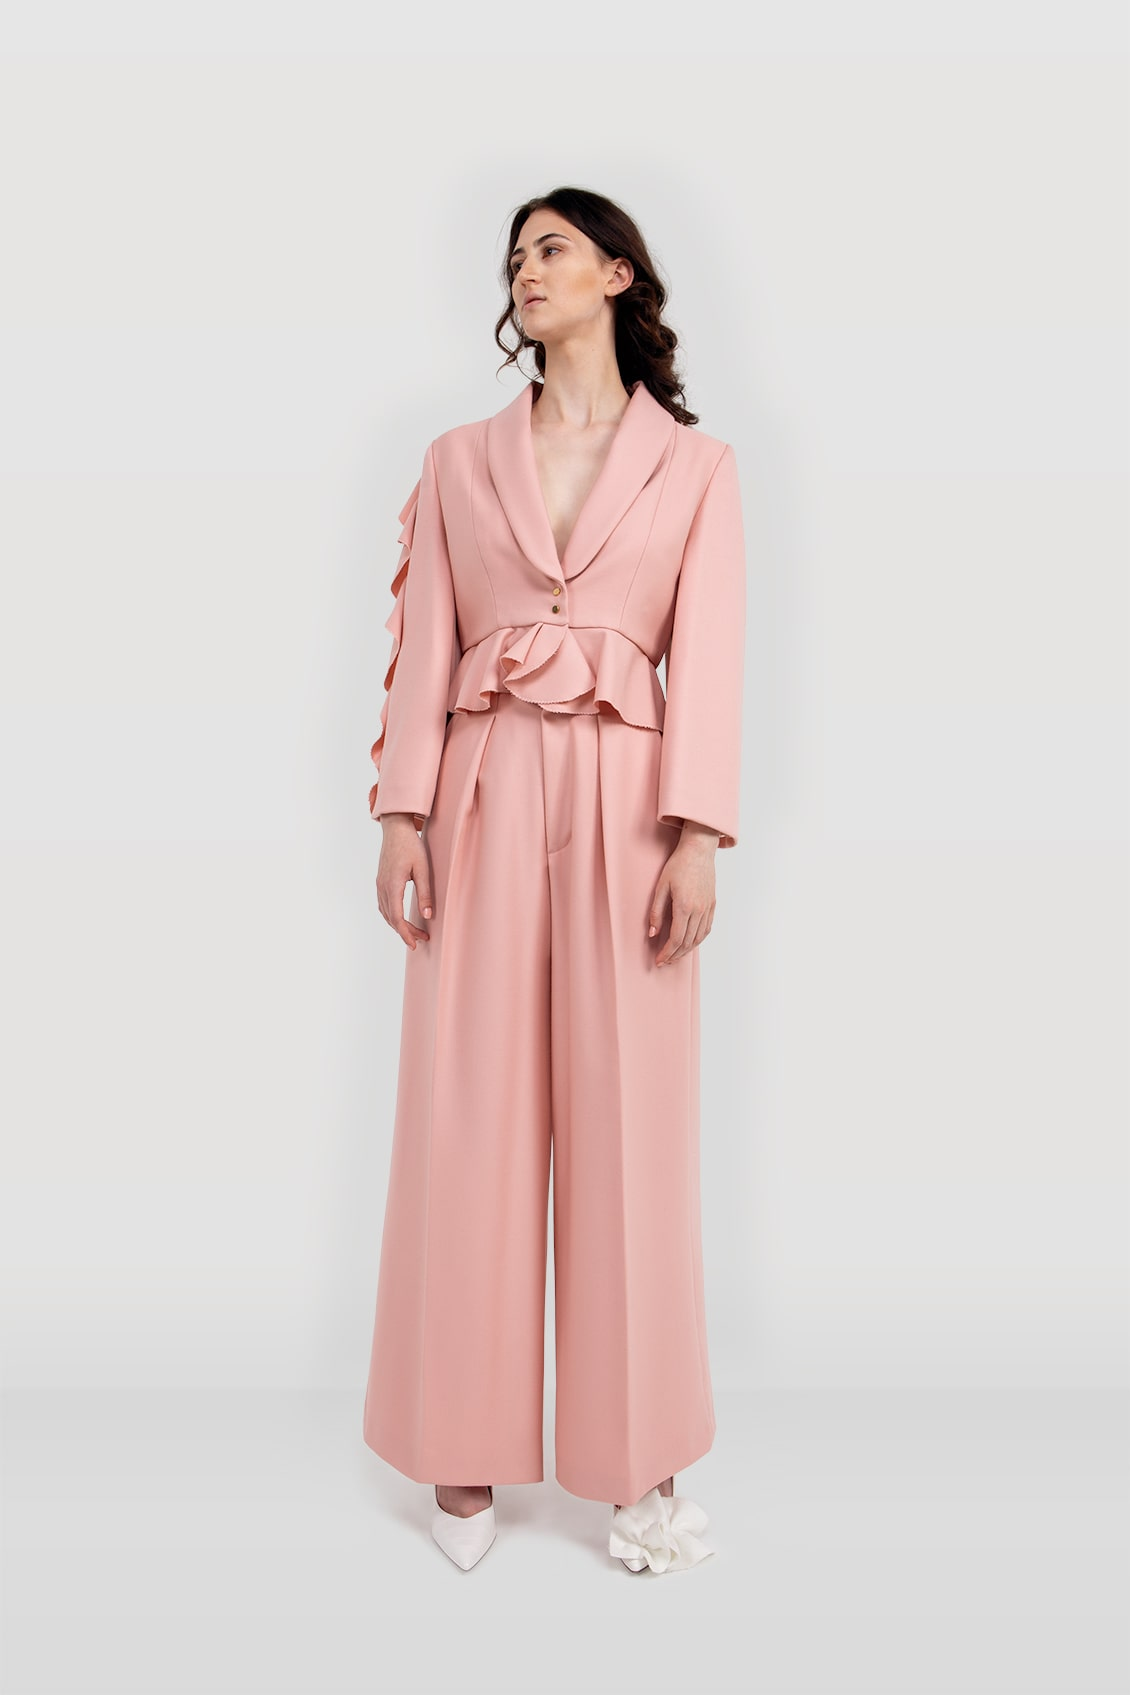 Front of the baby pink, designer women's tailored suit jacket 'ALYSA' with wide sleeves and ruffles along the right sleeve and the hem.